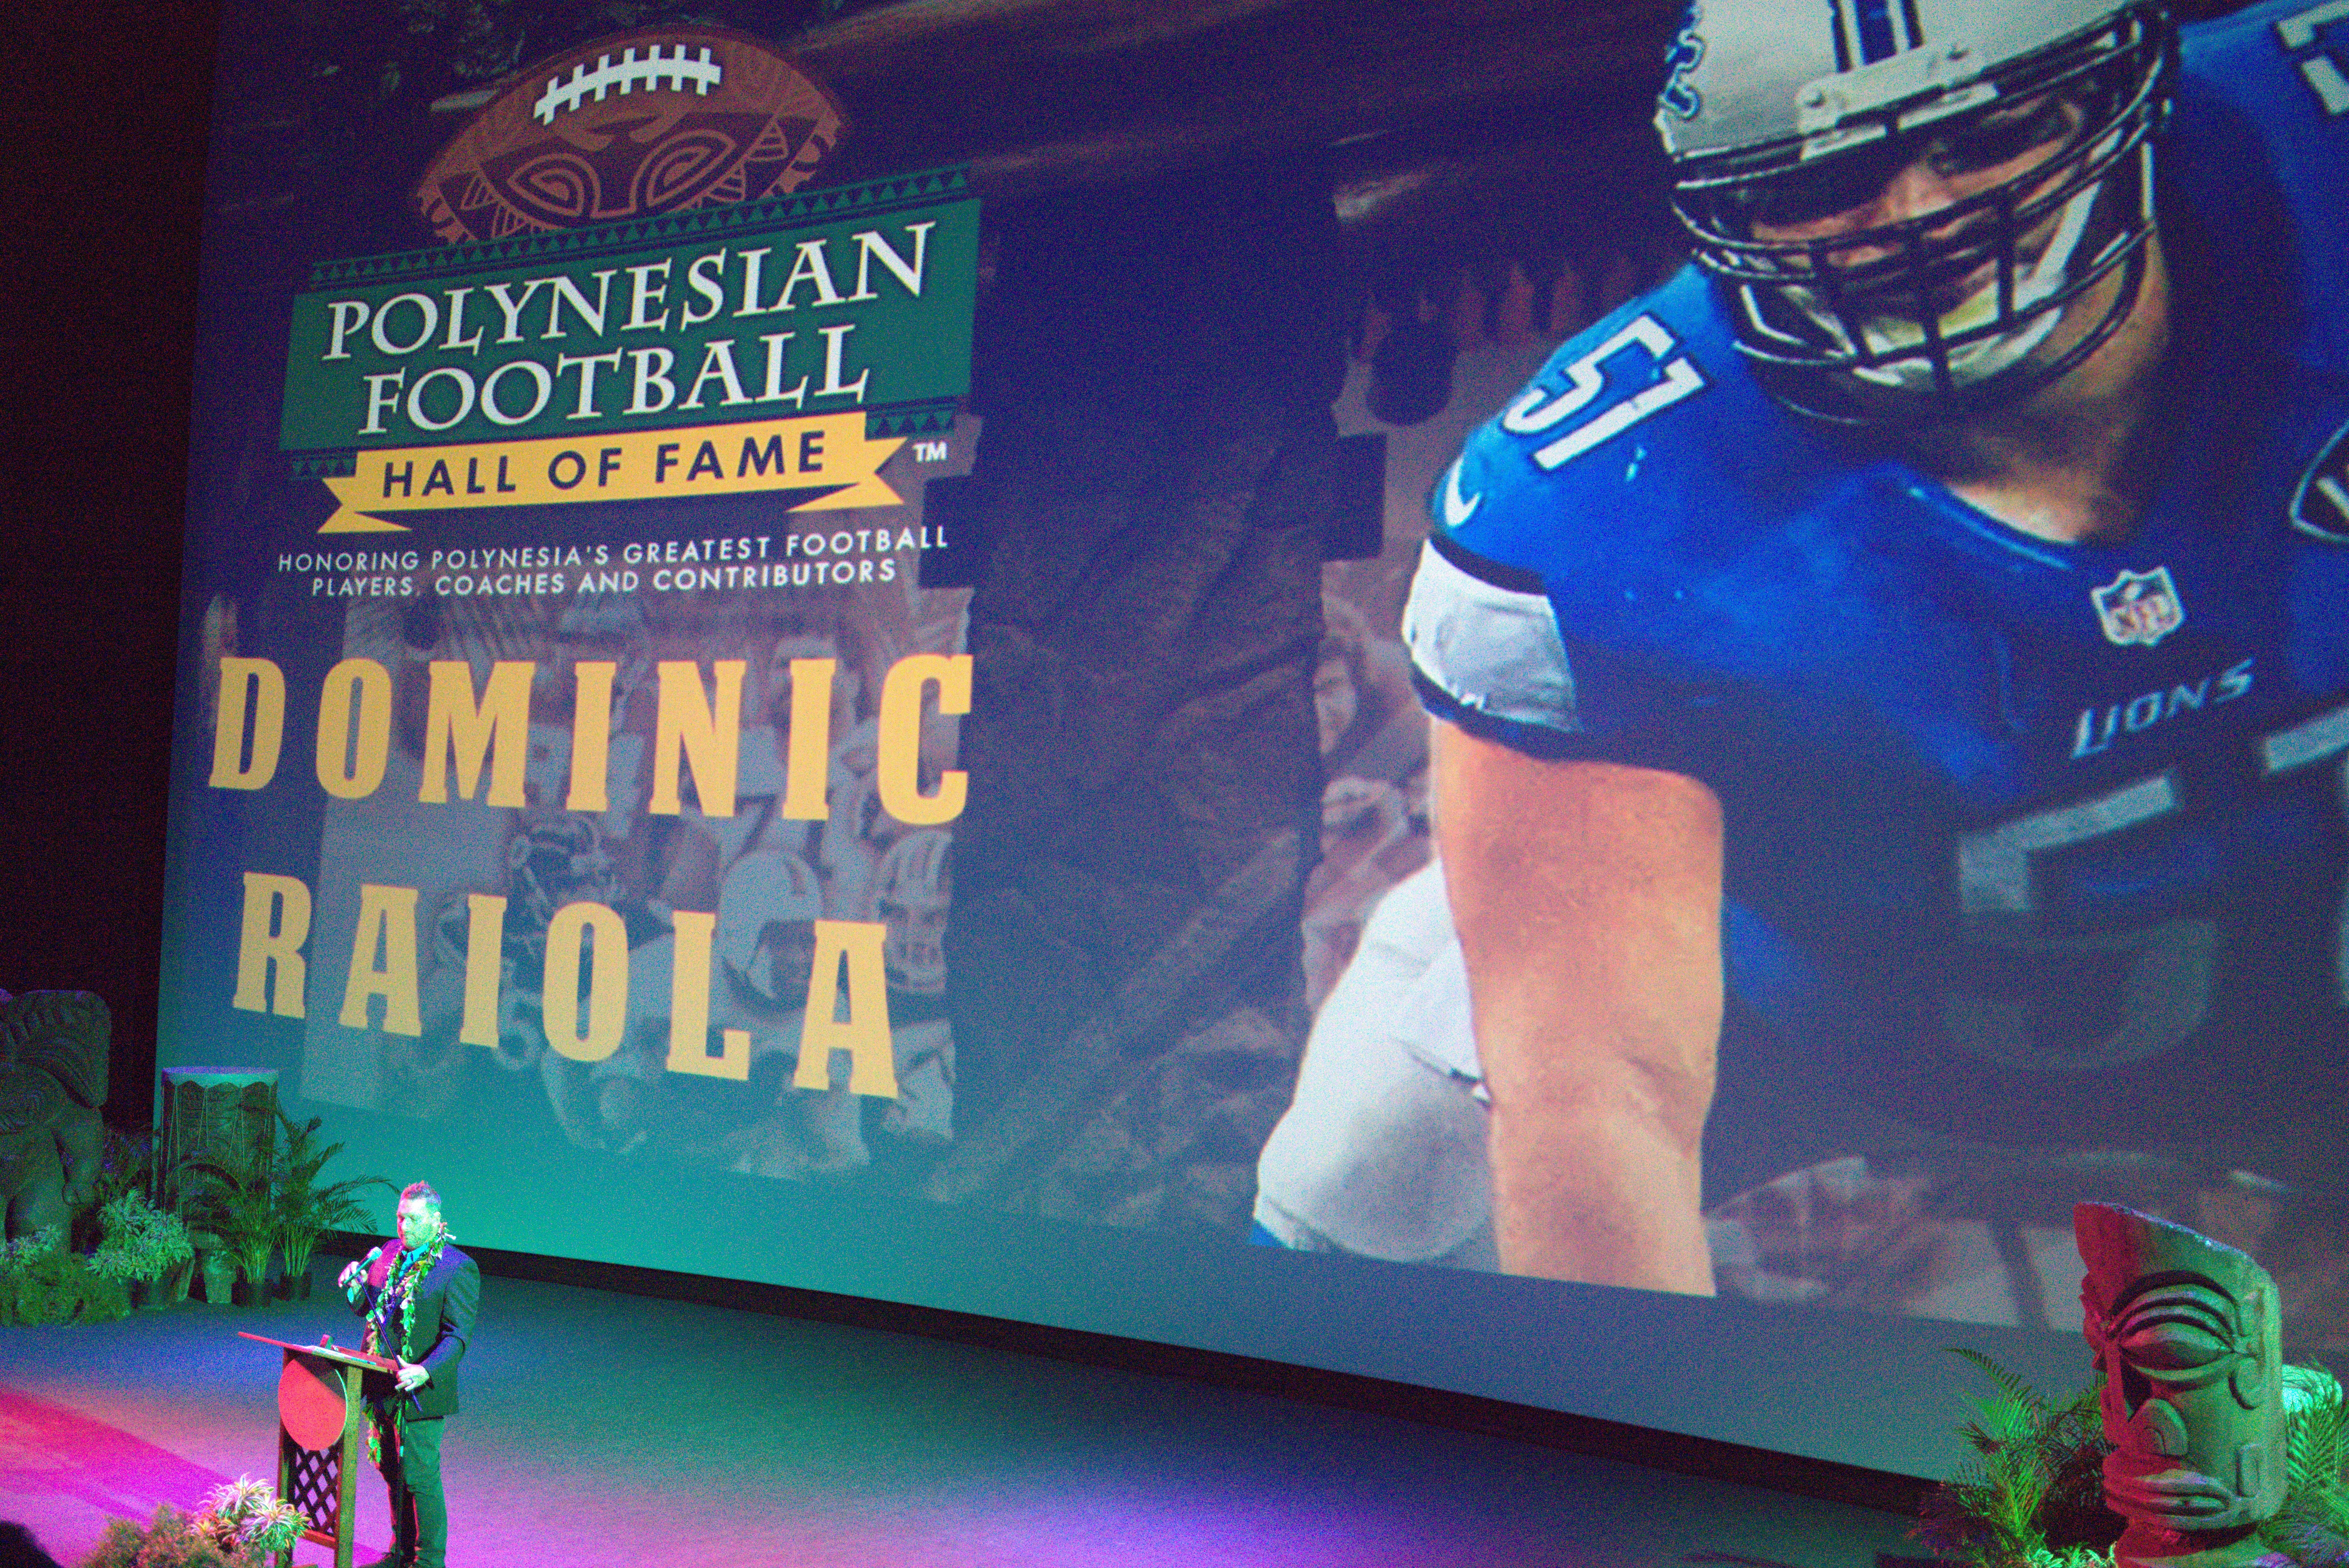 Photo of Dominic Raiola sharing his thoughts at the Polynesian Football Hall of Fame 2019 inductee celebration at the Polynesian Cultural Center.